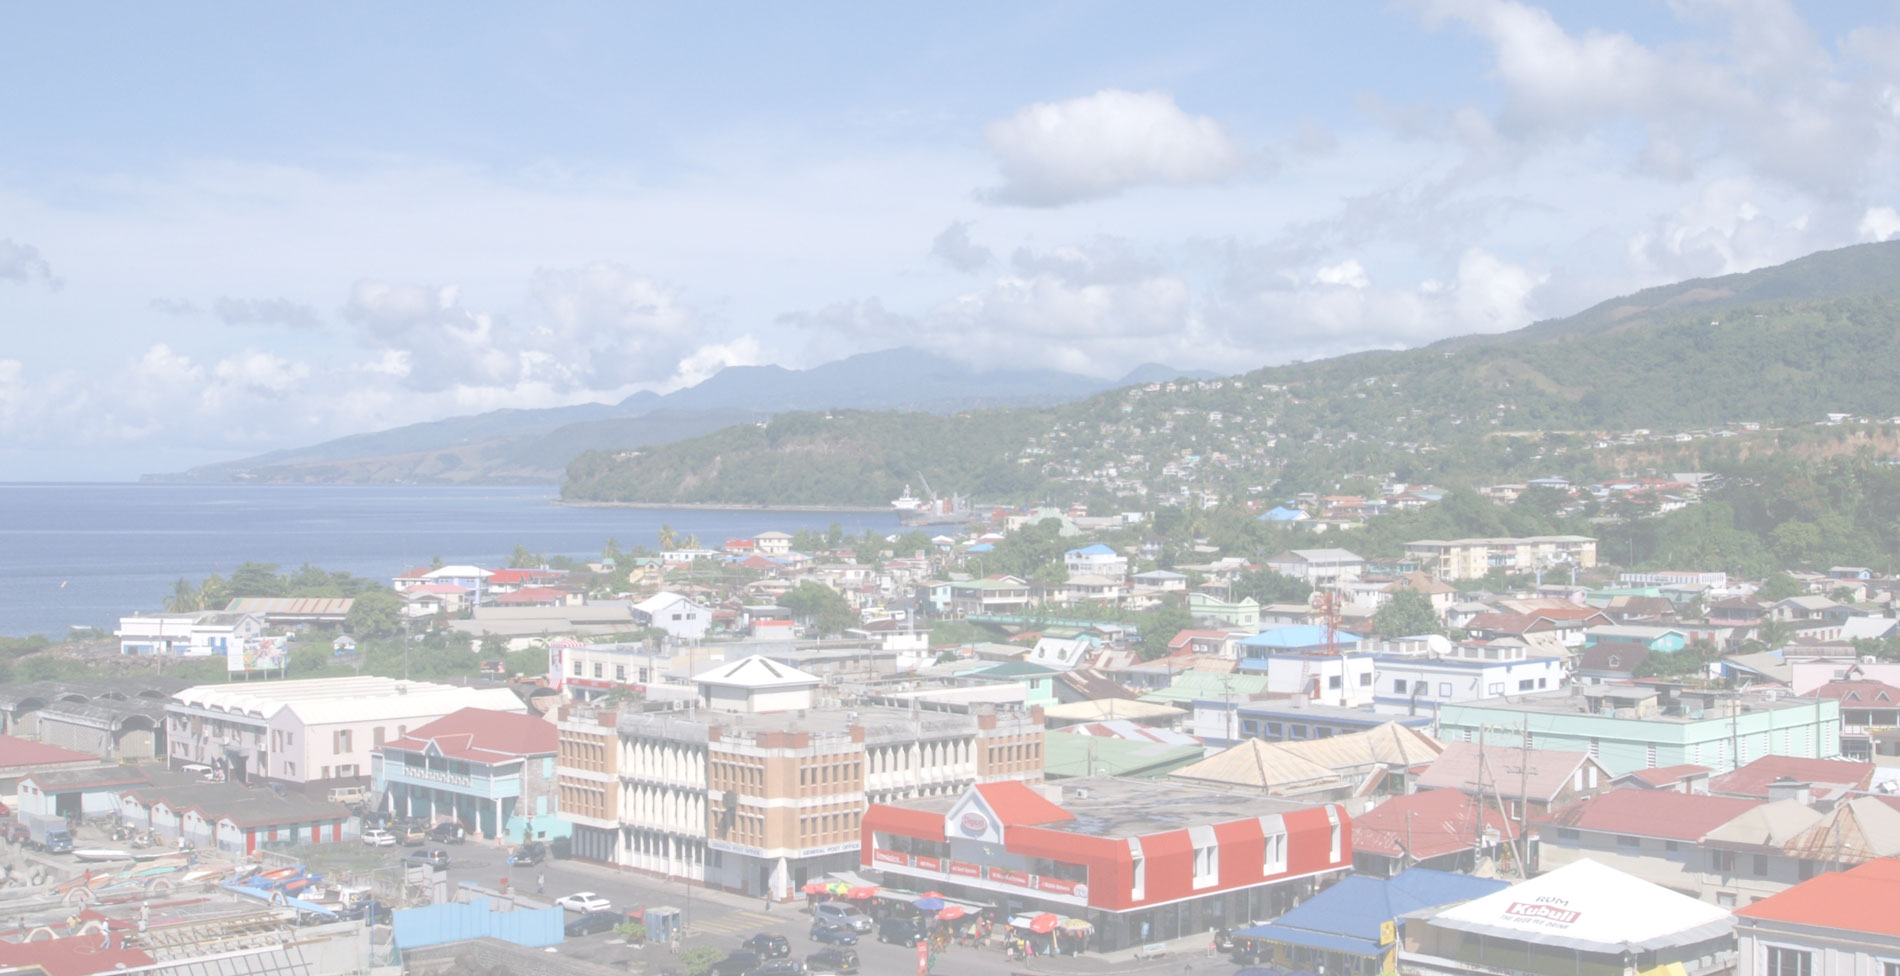 Dominica - Citizenship by Investment Journal